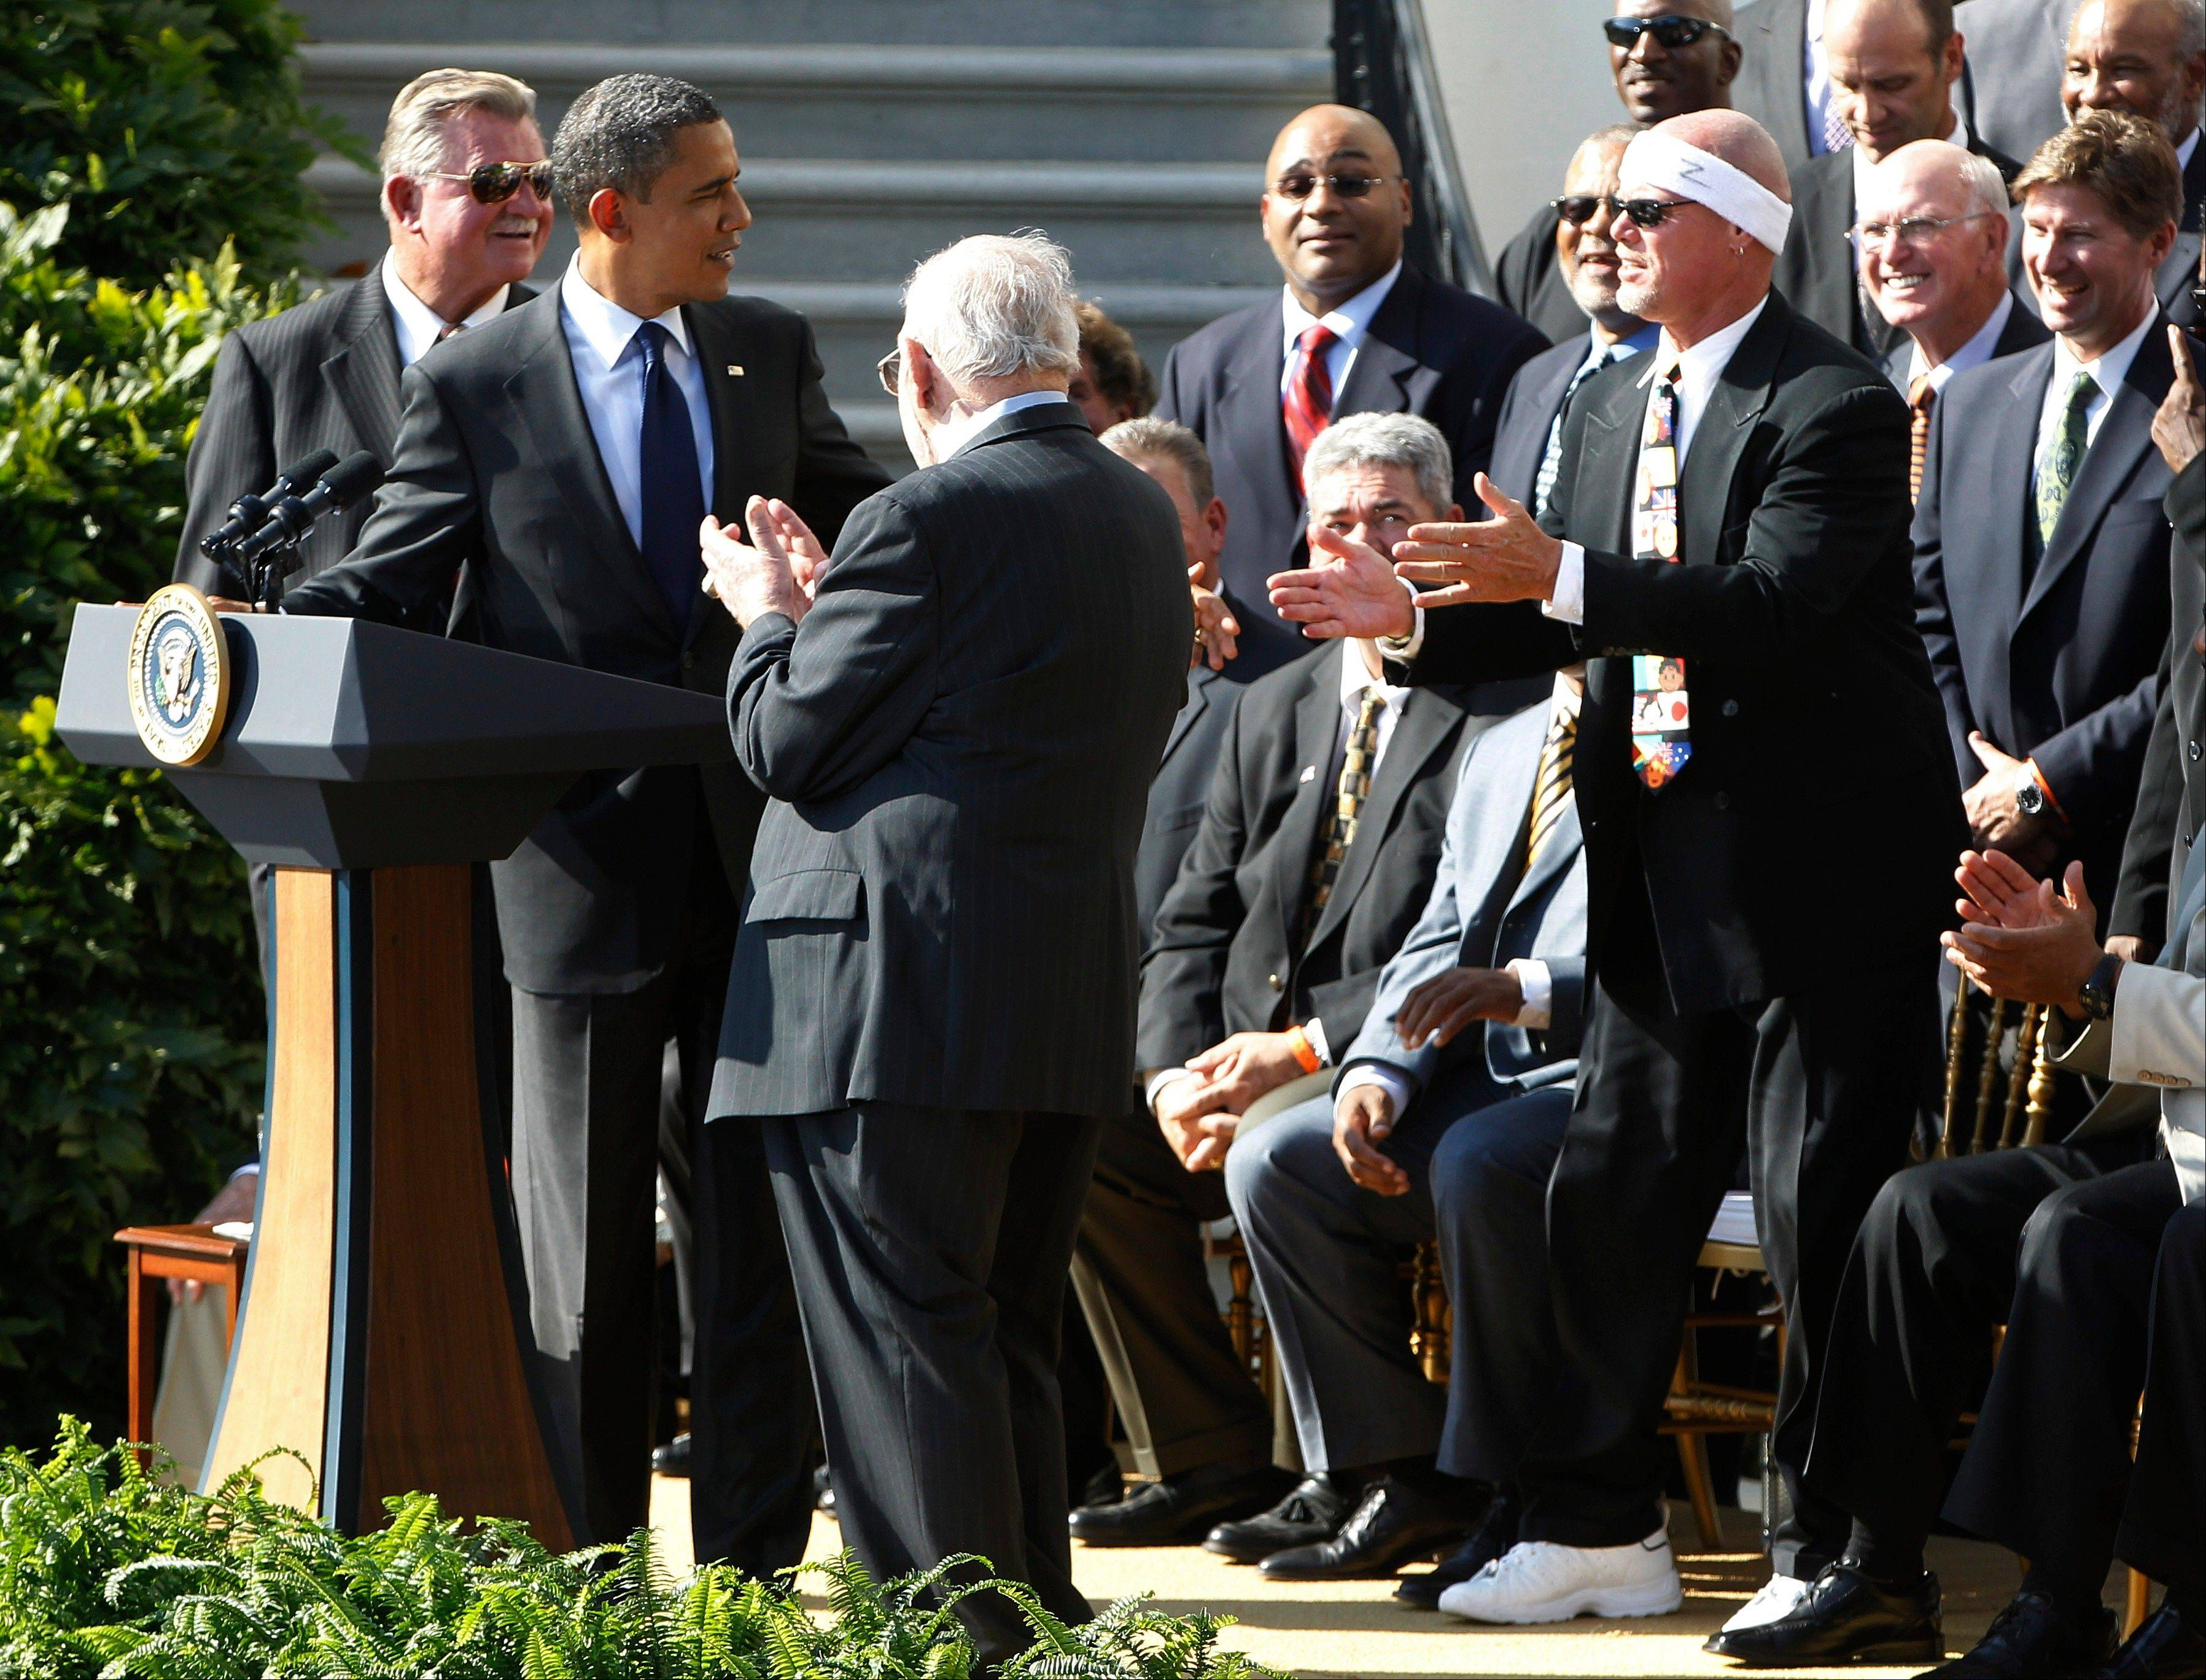 President Barack Obama looks towards quarterback Jim McMahon, wearing headband, right, as he stands with head coach Mike Ditka, left, and defensive coordinator Buddy Ryan, third left, as he honors the 1985 Super Bowl XX Champions Chicago Bears football team during a ceremony on the South Lawn of the White House in Washington, Friday, Oct. 7, 2011.